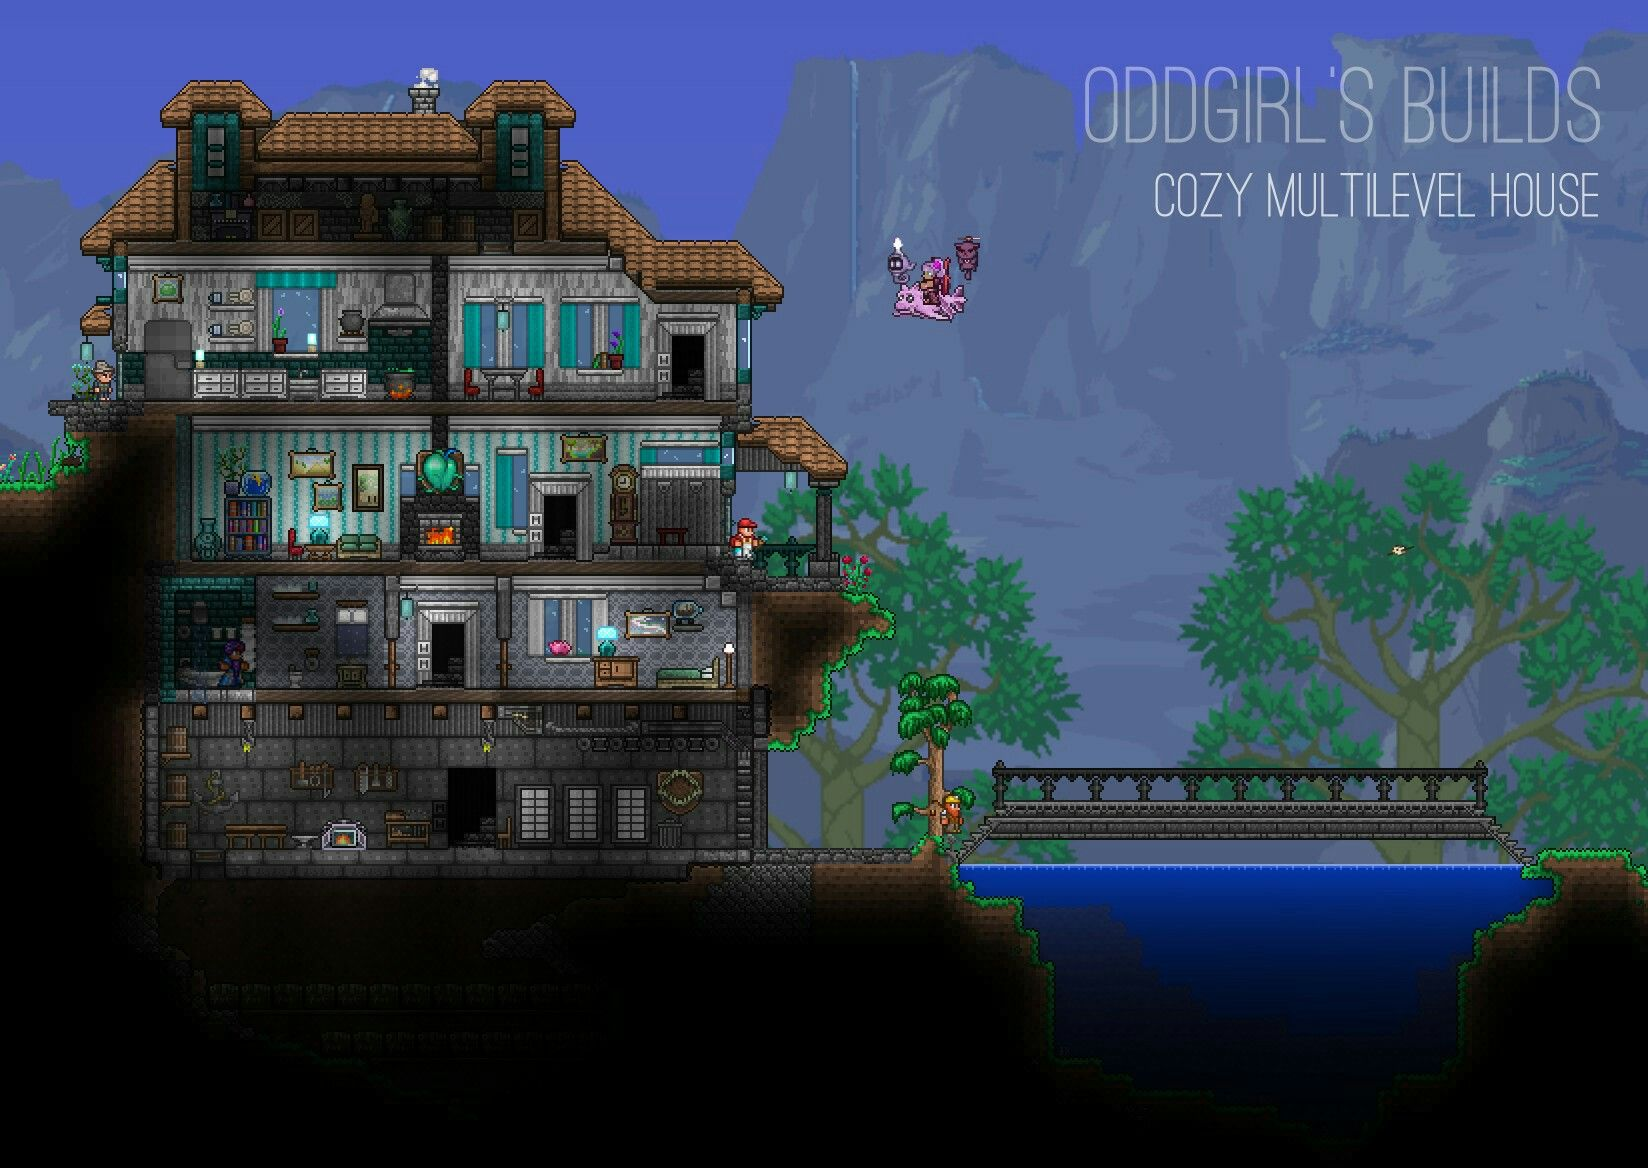 Cody Multilevel House by OddGirl terraria… sigh I know